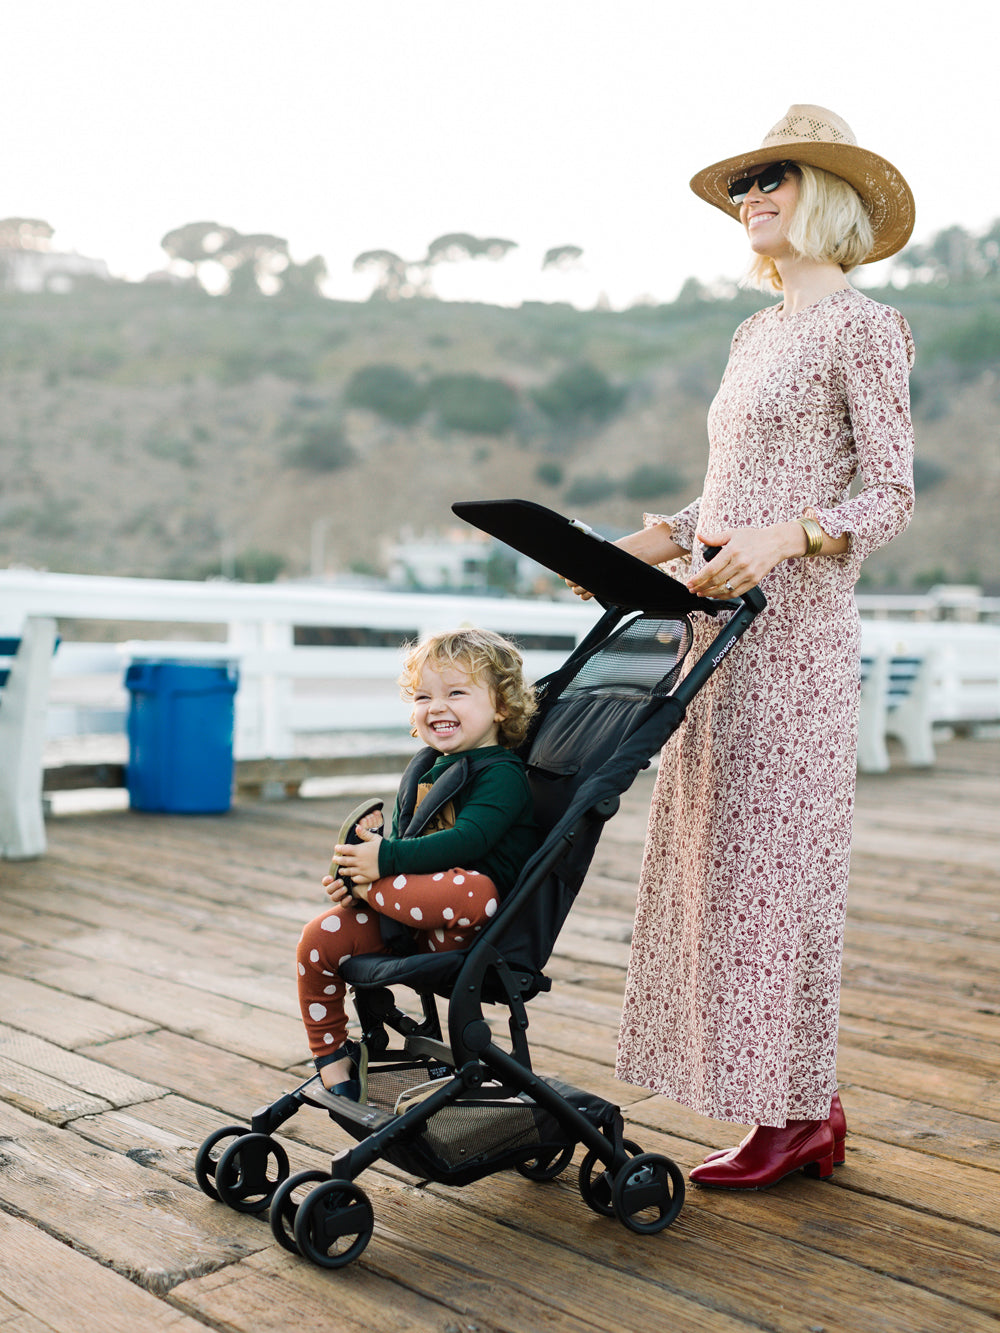 Brooke and Sonny with the Poppy stroller on the Malibu Pier.